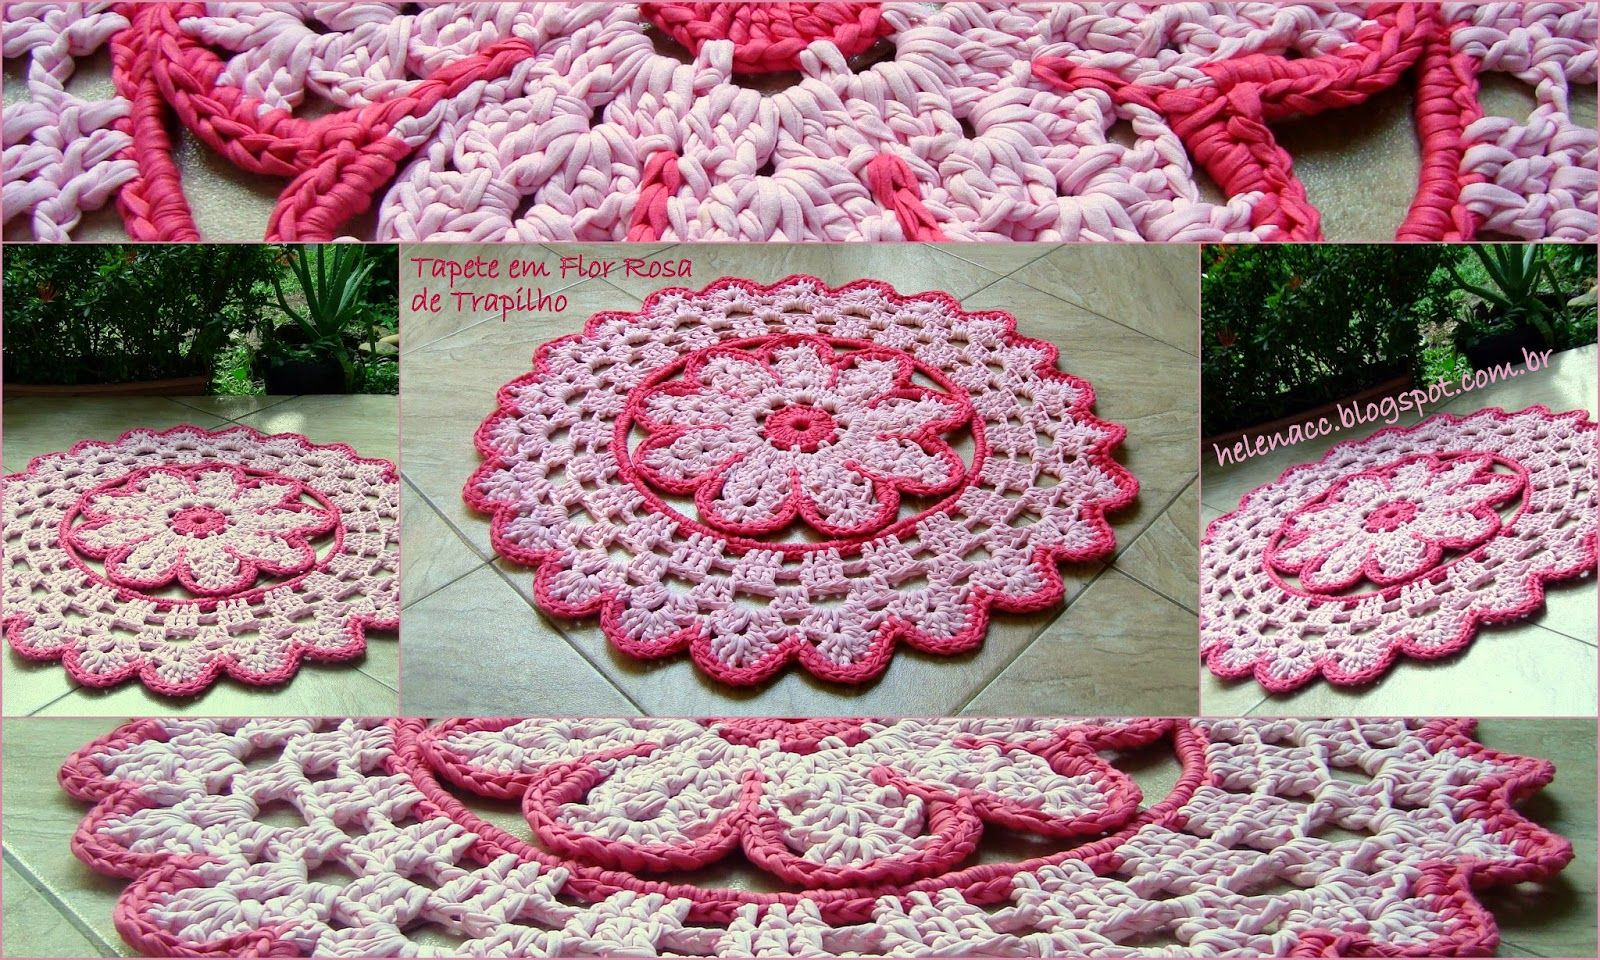 EU TAMBÉM CROCHETO...: Tapete em Flor Rosa de Trapilho (Site has a chart for the pattern- looks like t-shirt yarn, too)